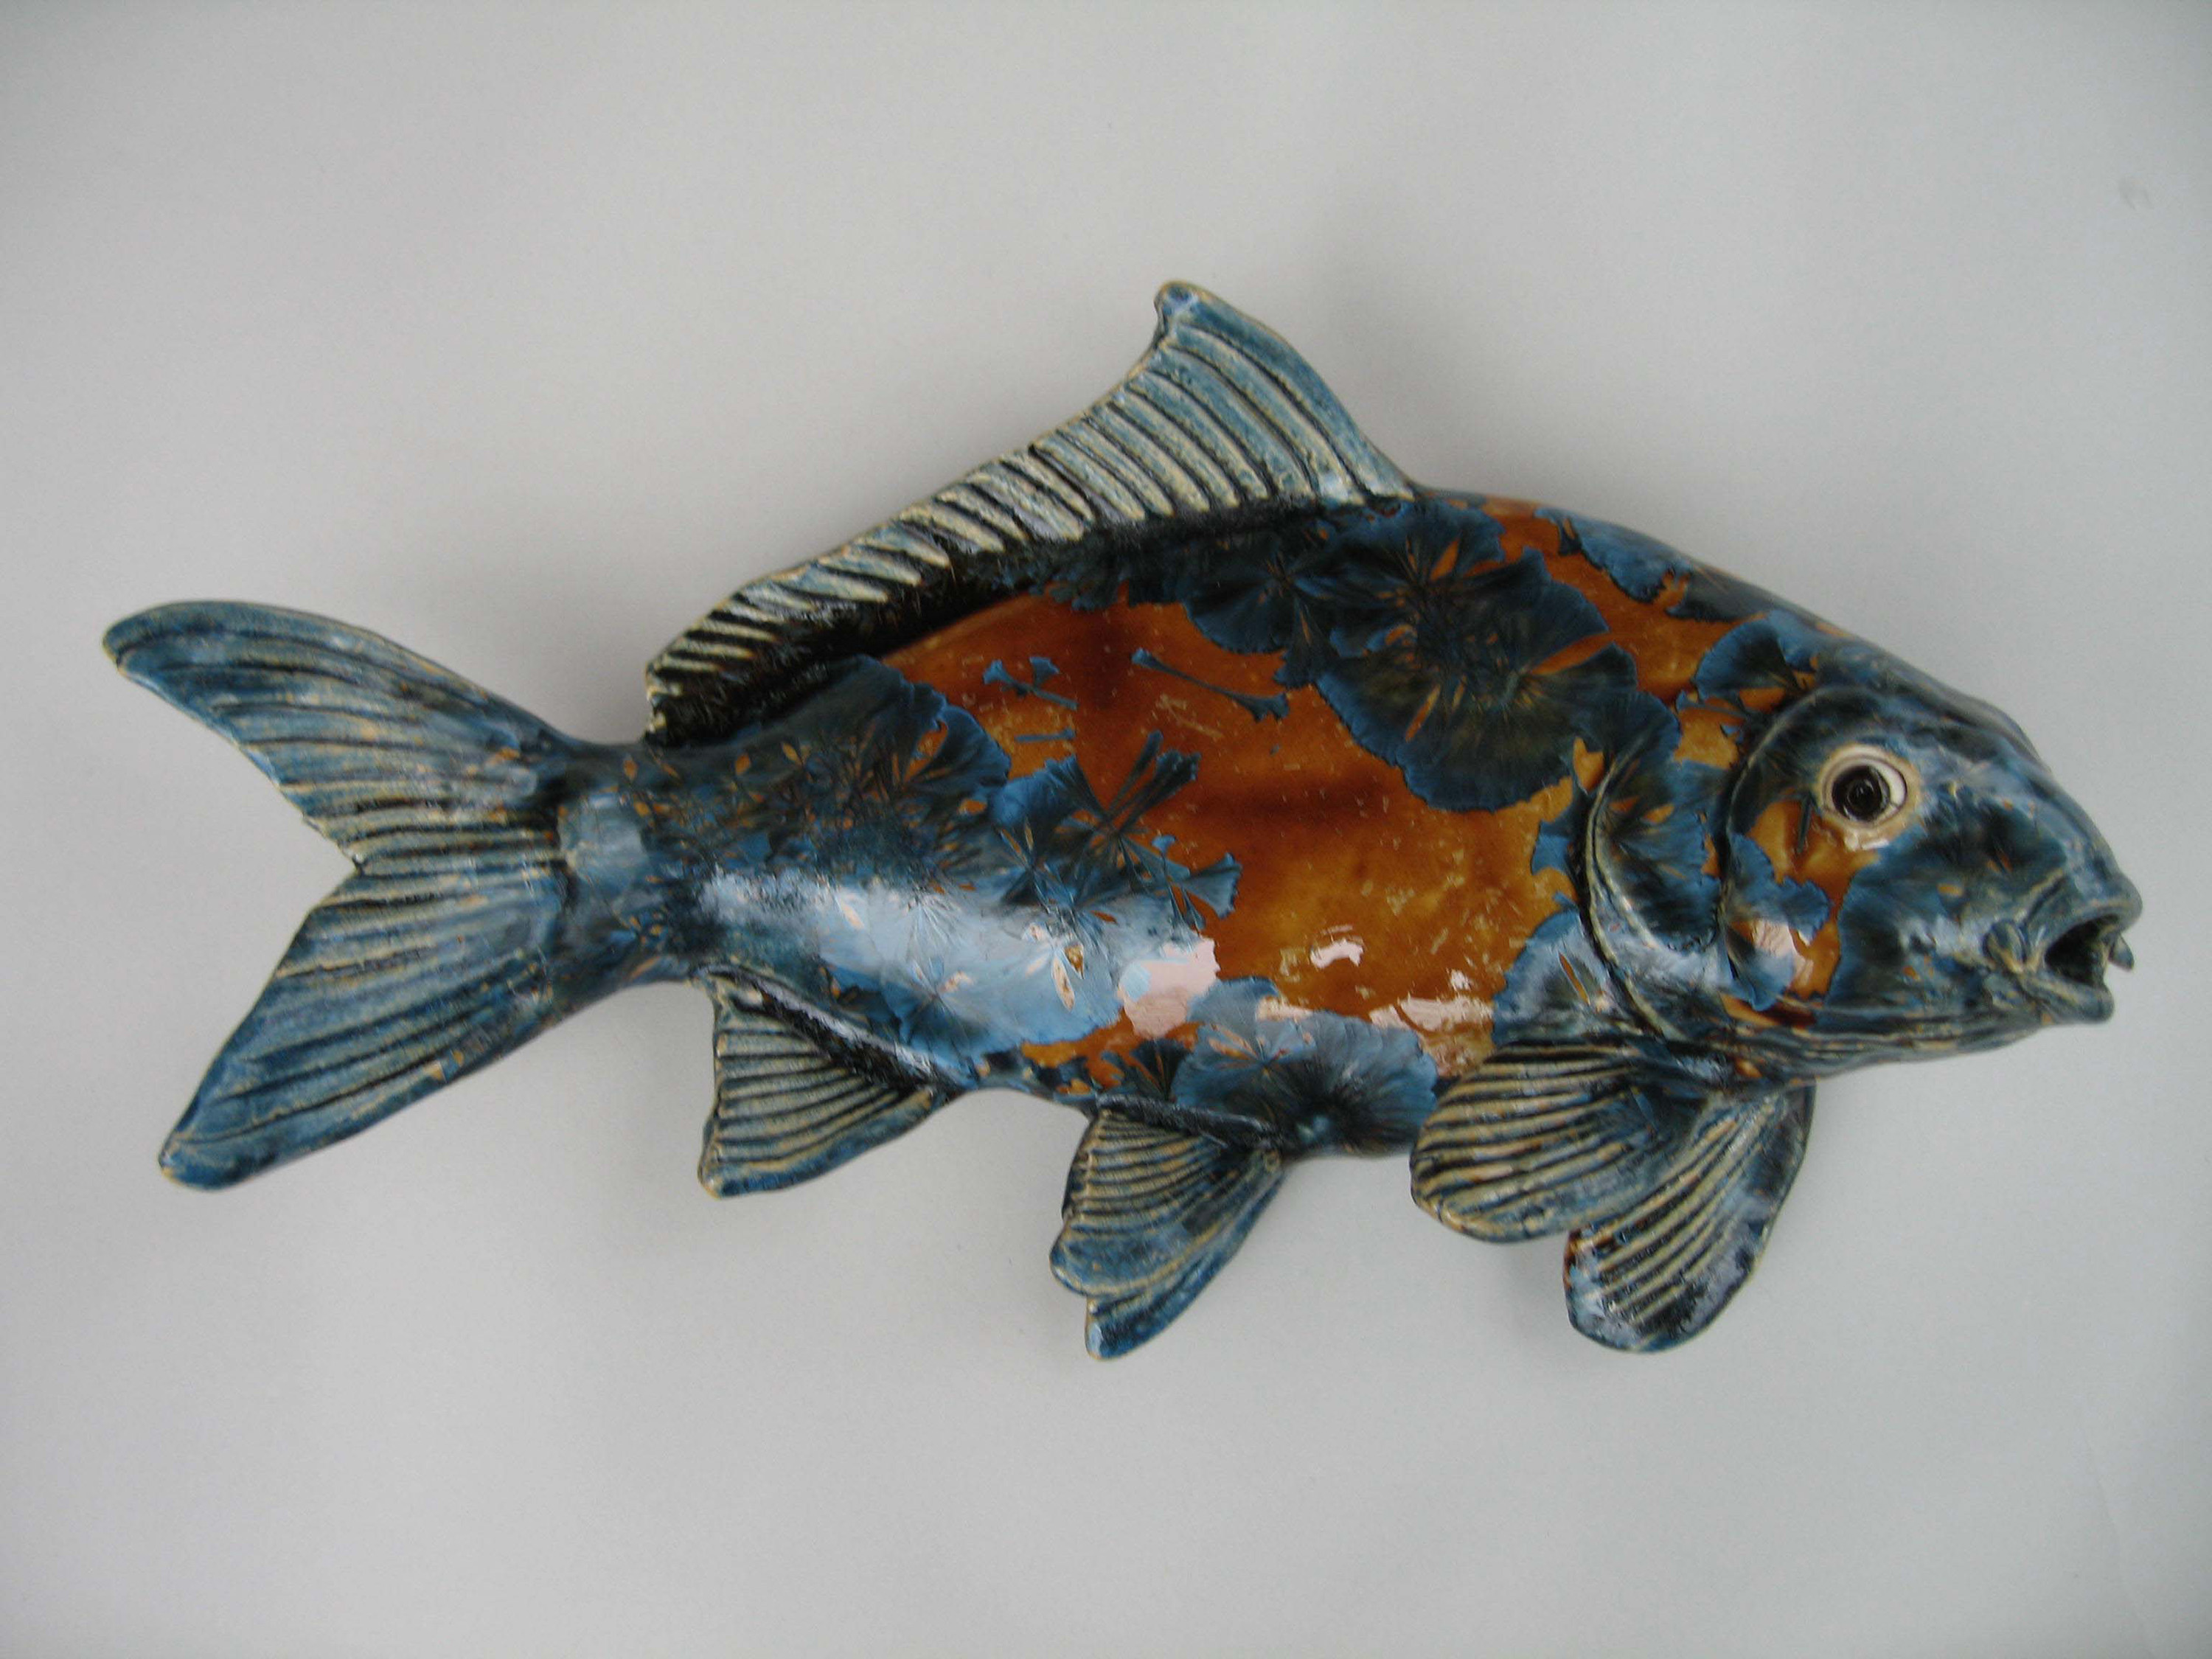 Freshwater fish alan rosemary clay studio for Freshwater koi fish